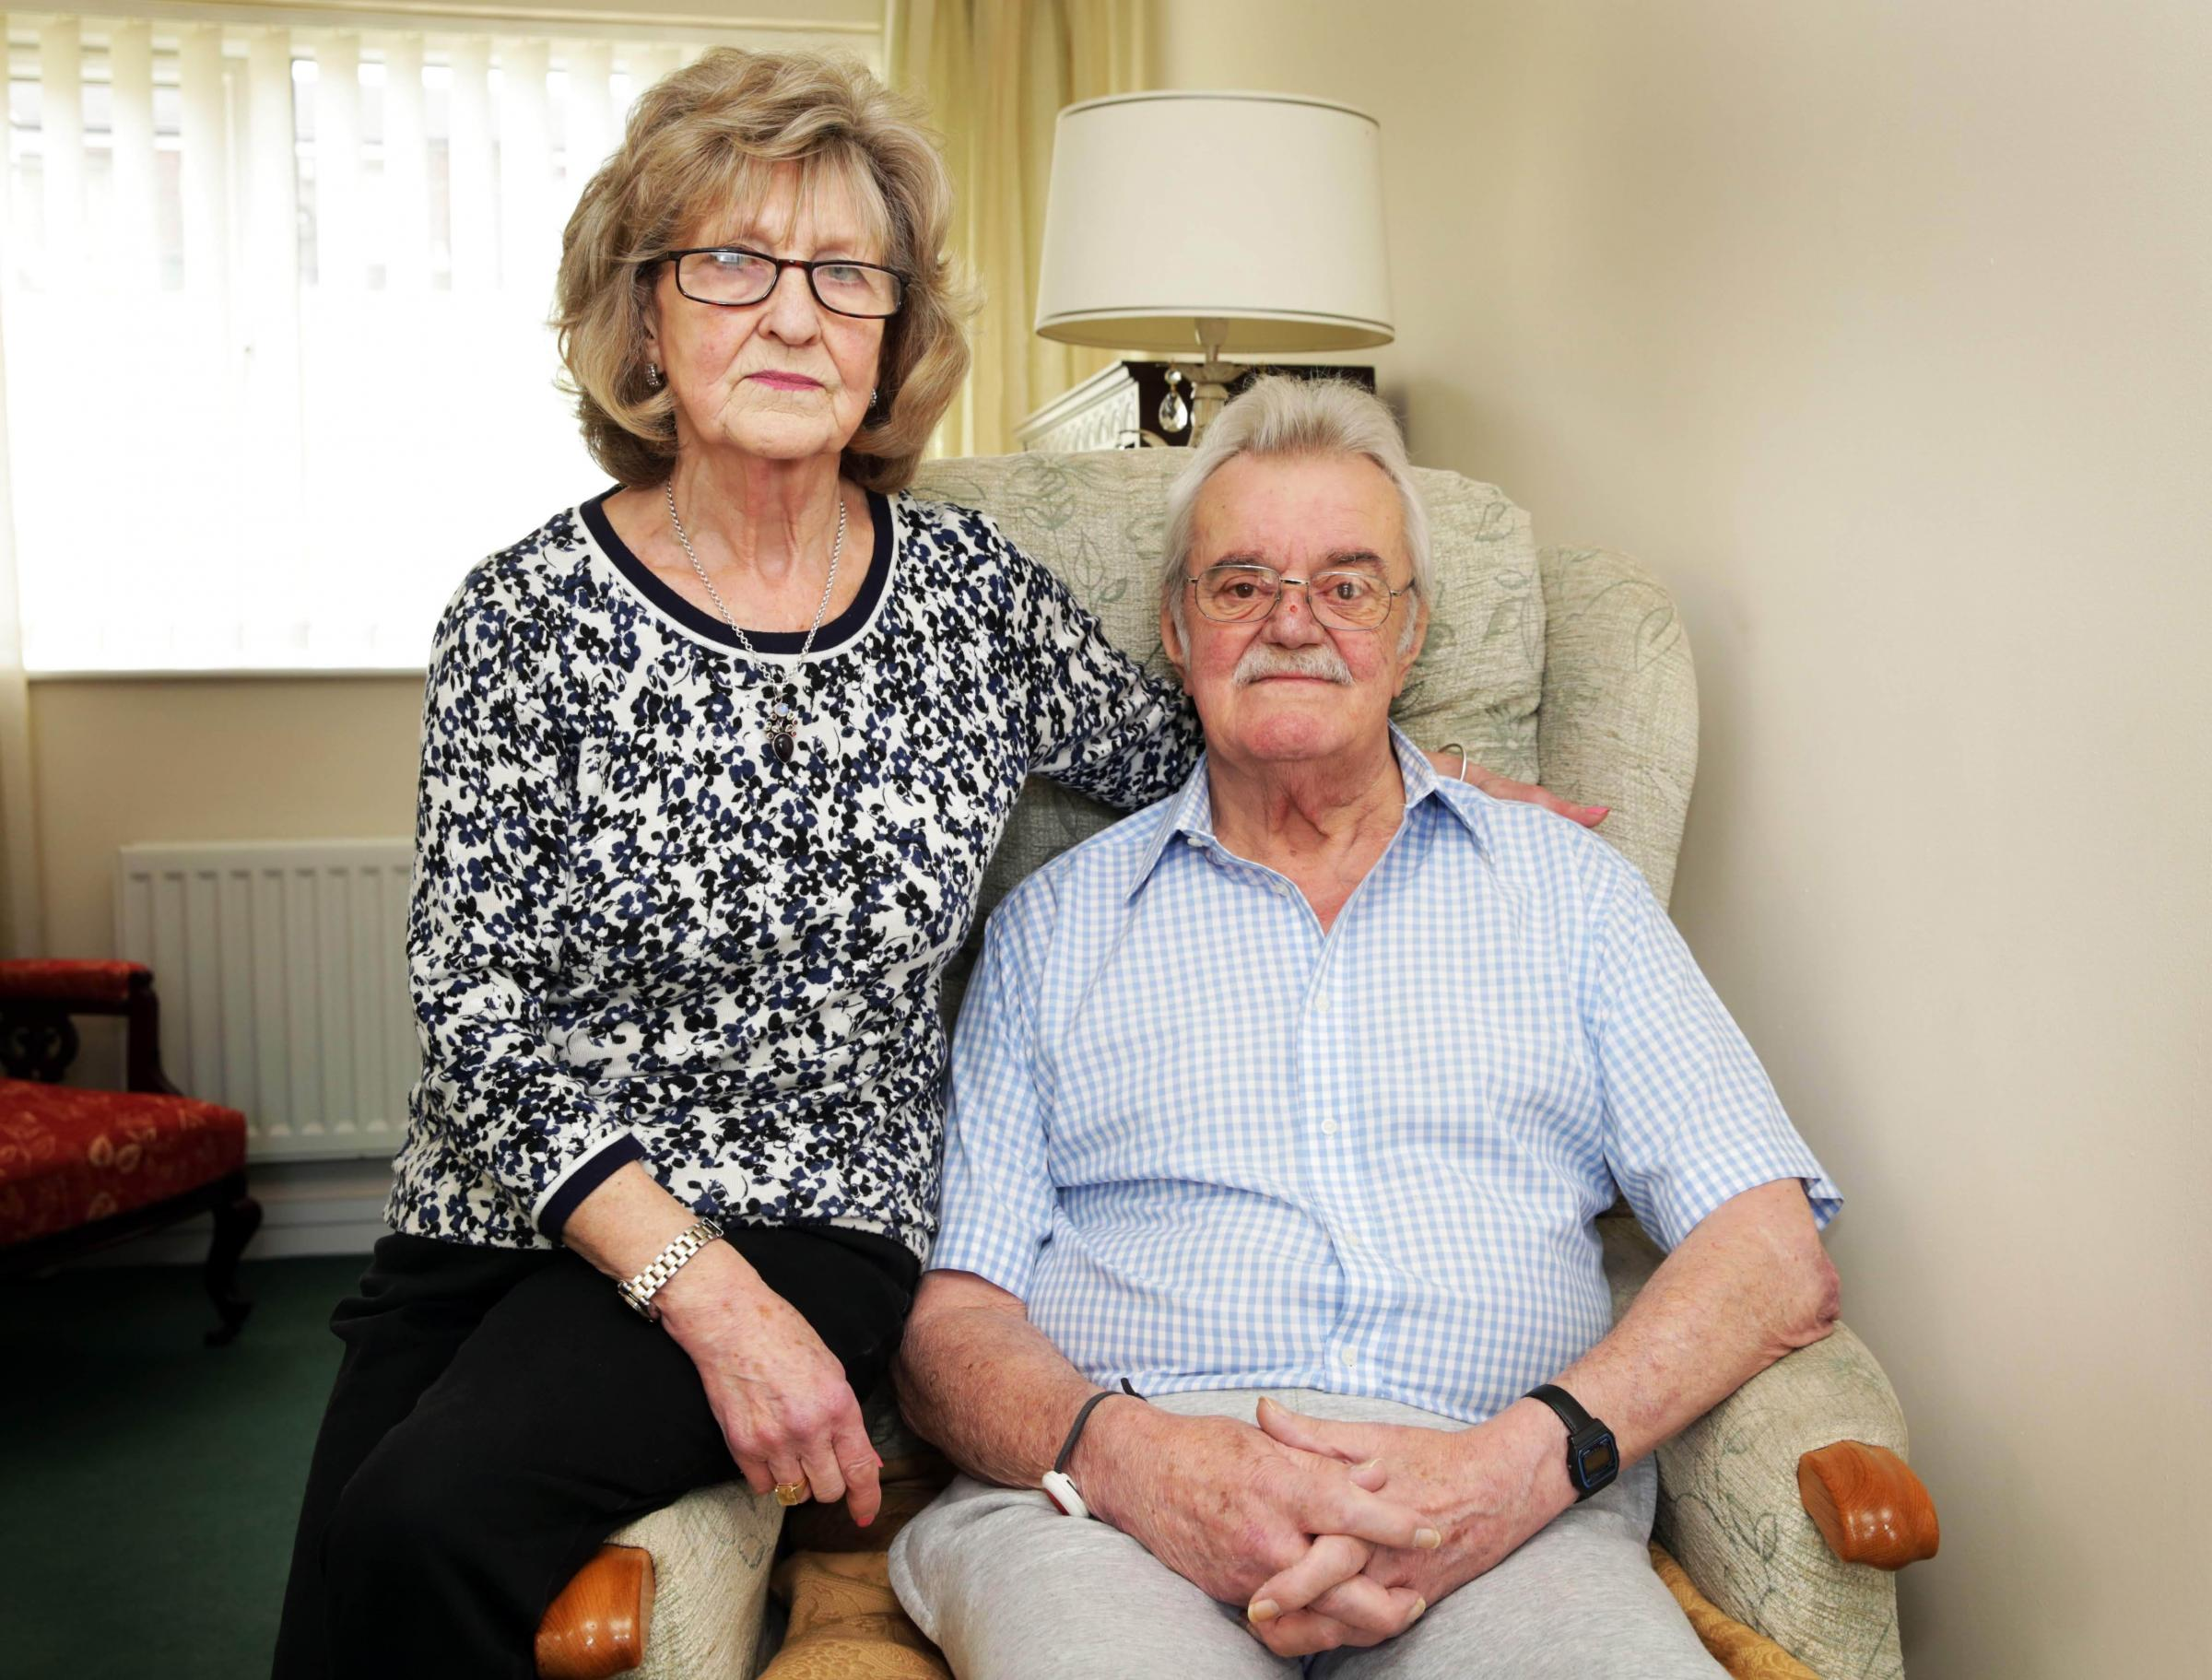 FRAUD: Veteran Eric Dunnill and his wife Biddie have been fully reimbursed after fraudsters stole £10,000 from their account Picture: SARAH CALDECOTT.